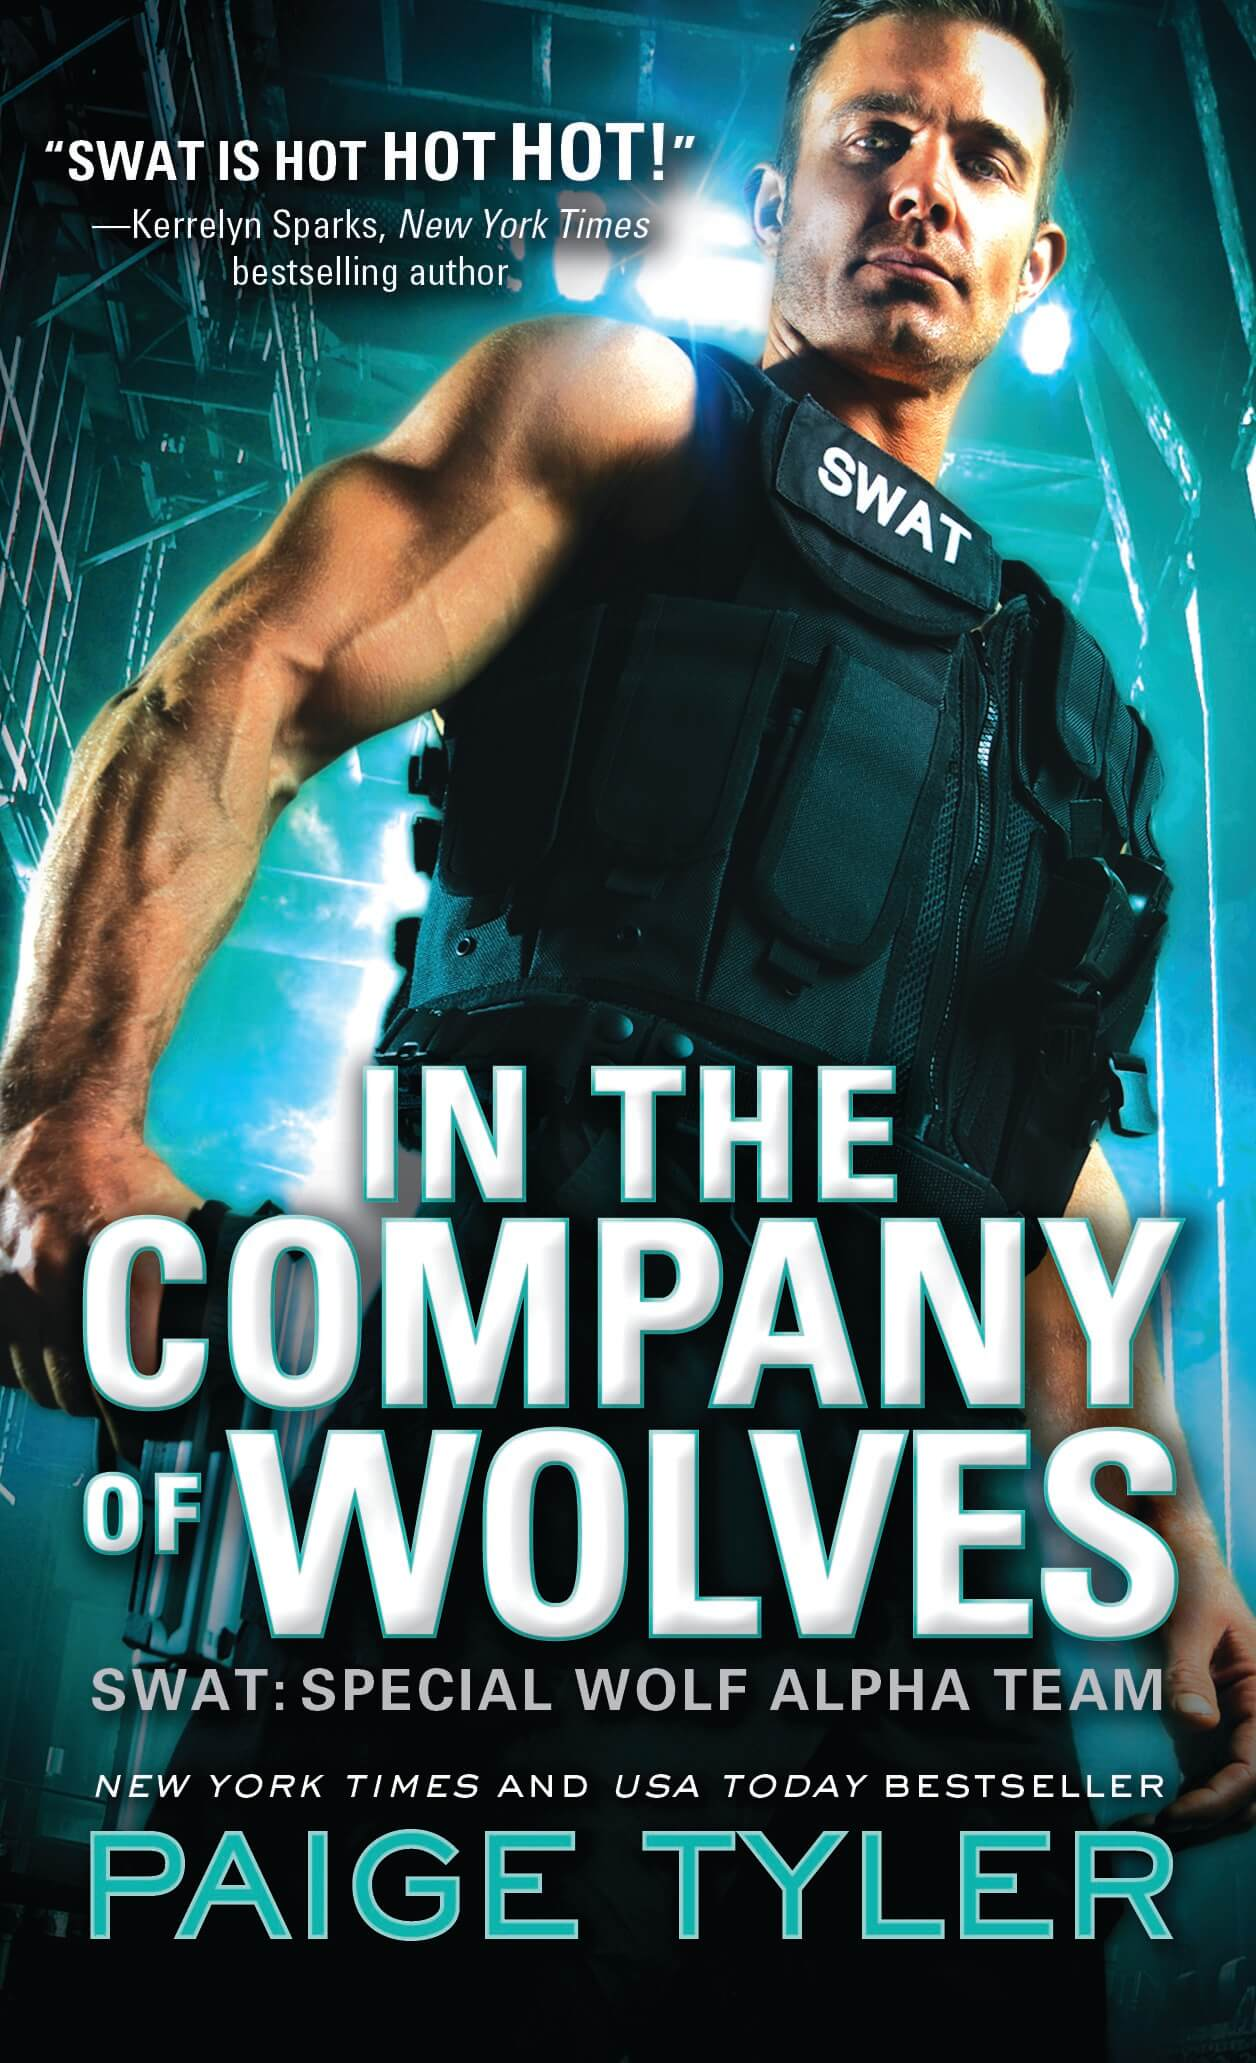 In the Company of Wolves